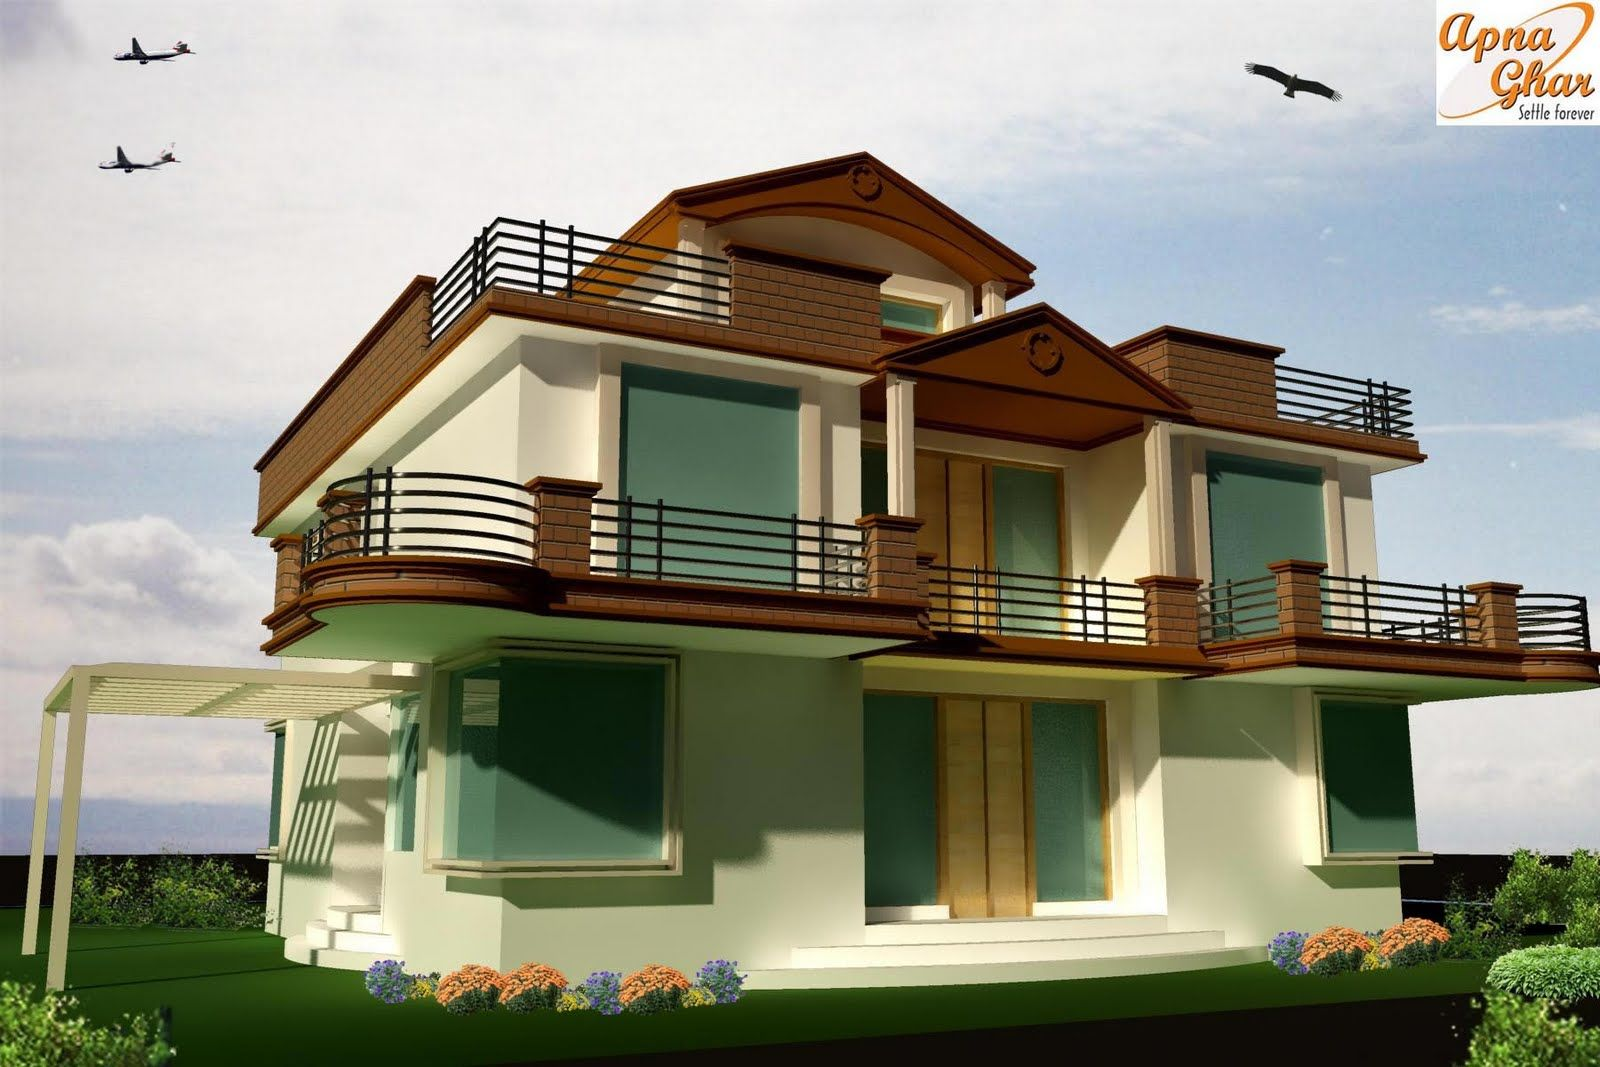 Architectural designs modern architectural house plans for Best architectural house plans